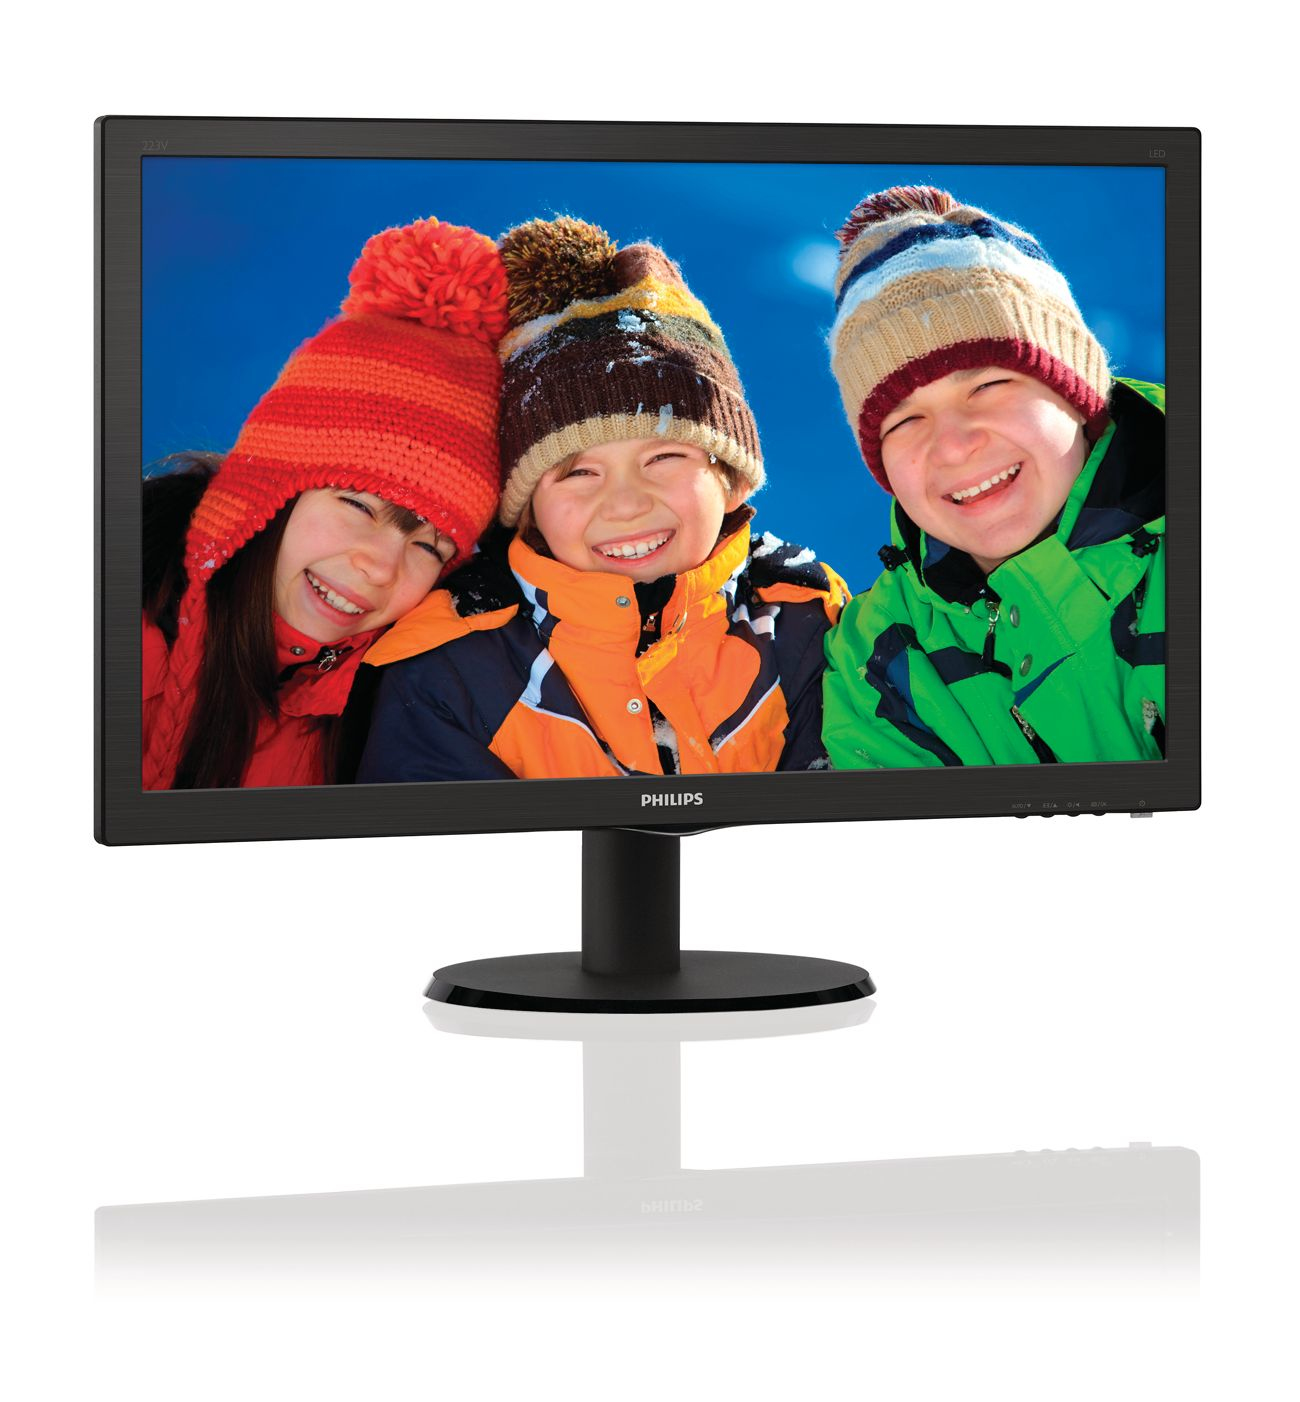 MONITOR PHILIPS 223V5LHB 22 LED HDMI